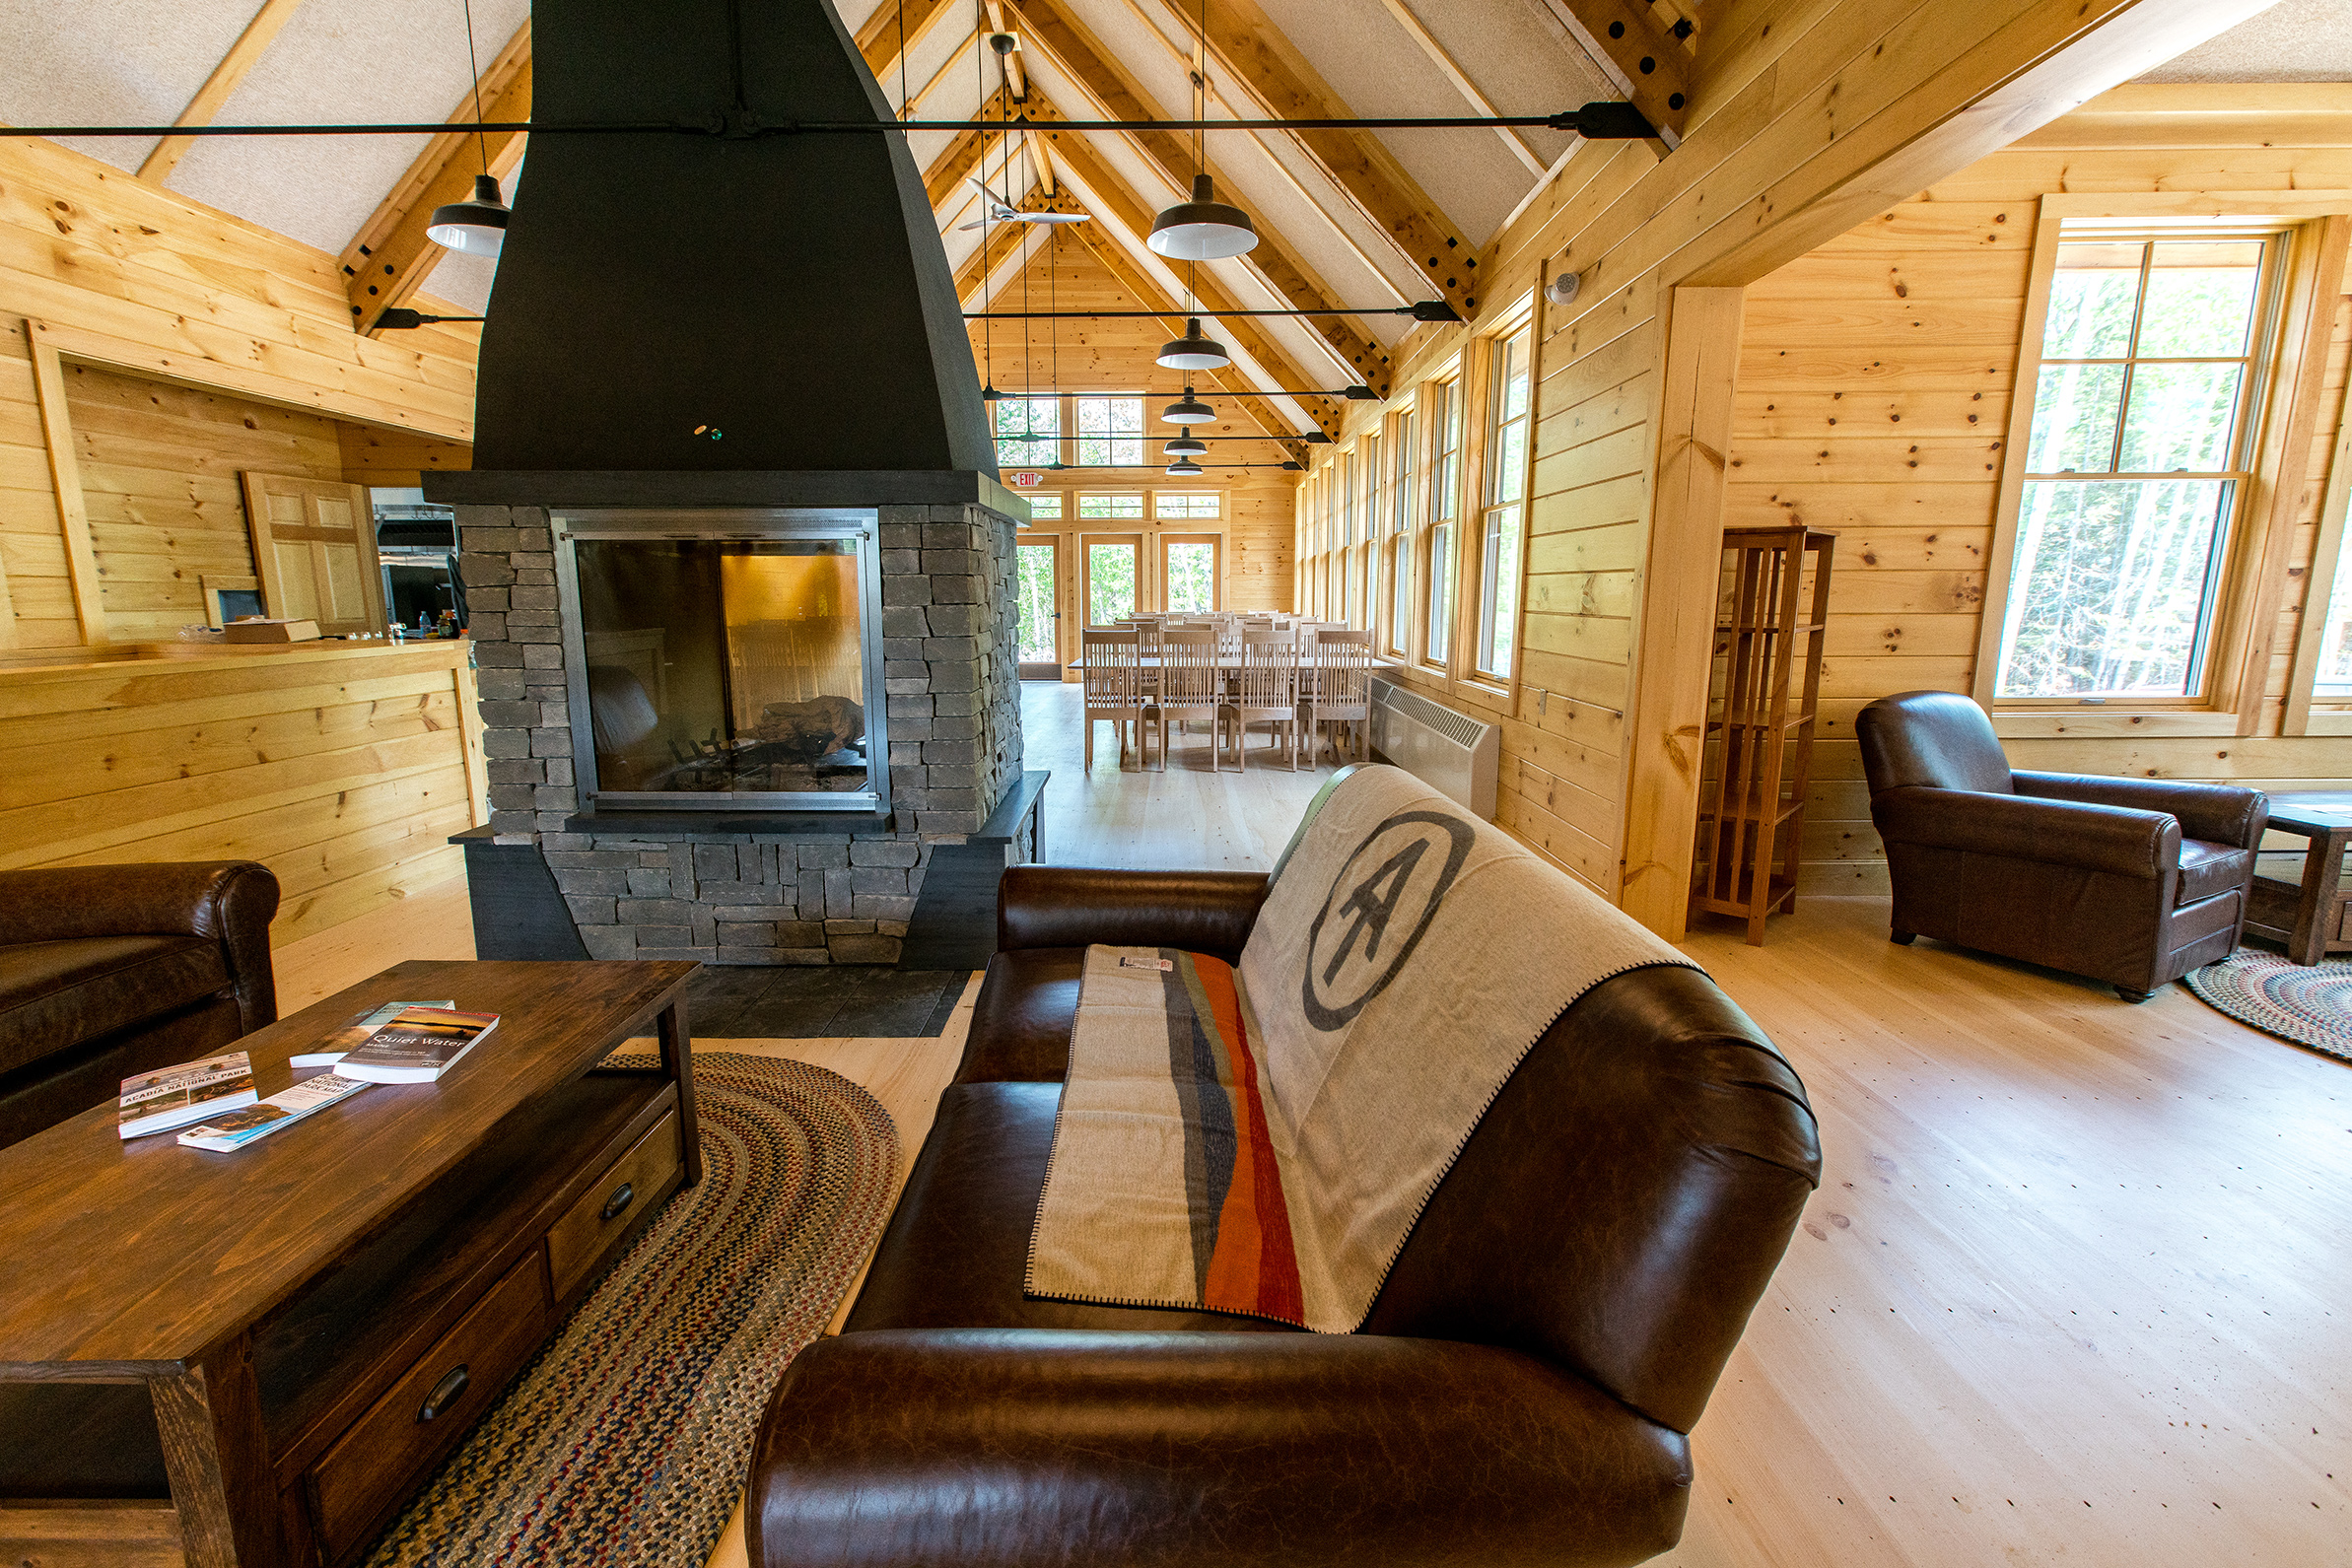 The interior common area of Meawisla Lodge.